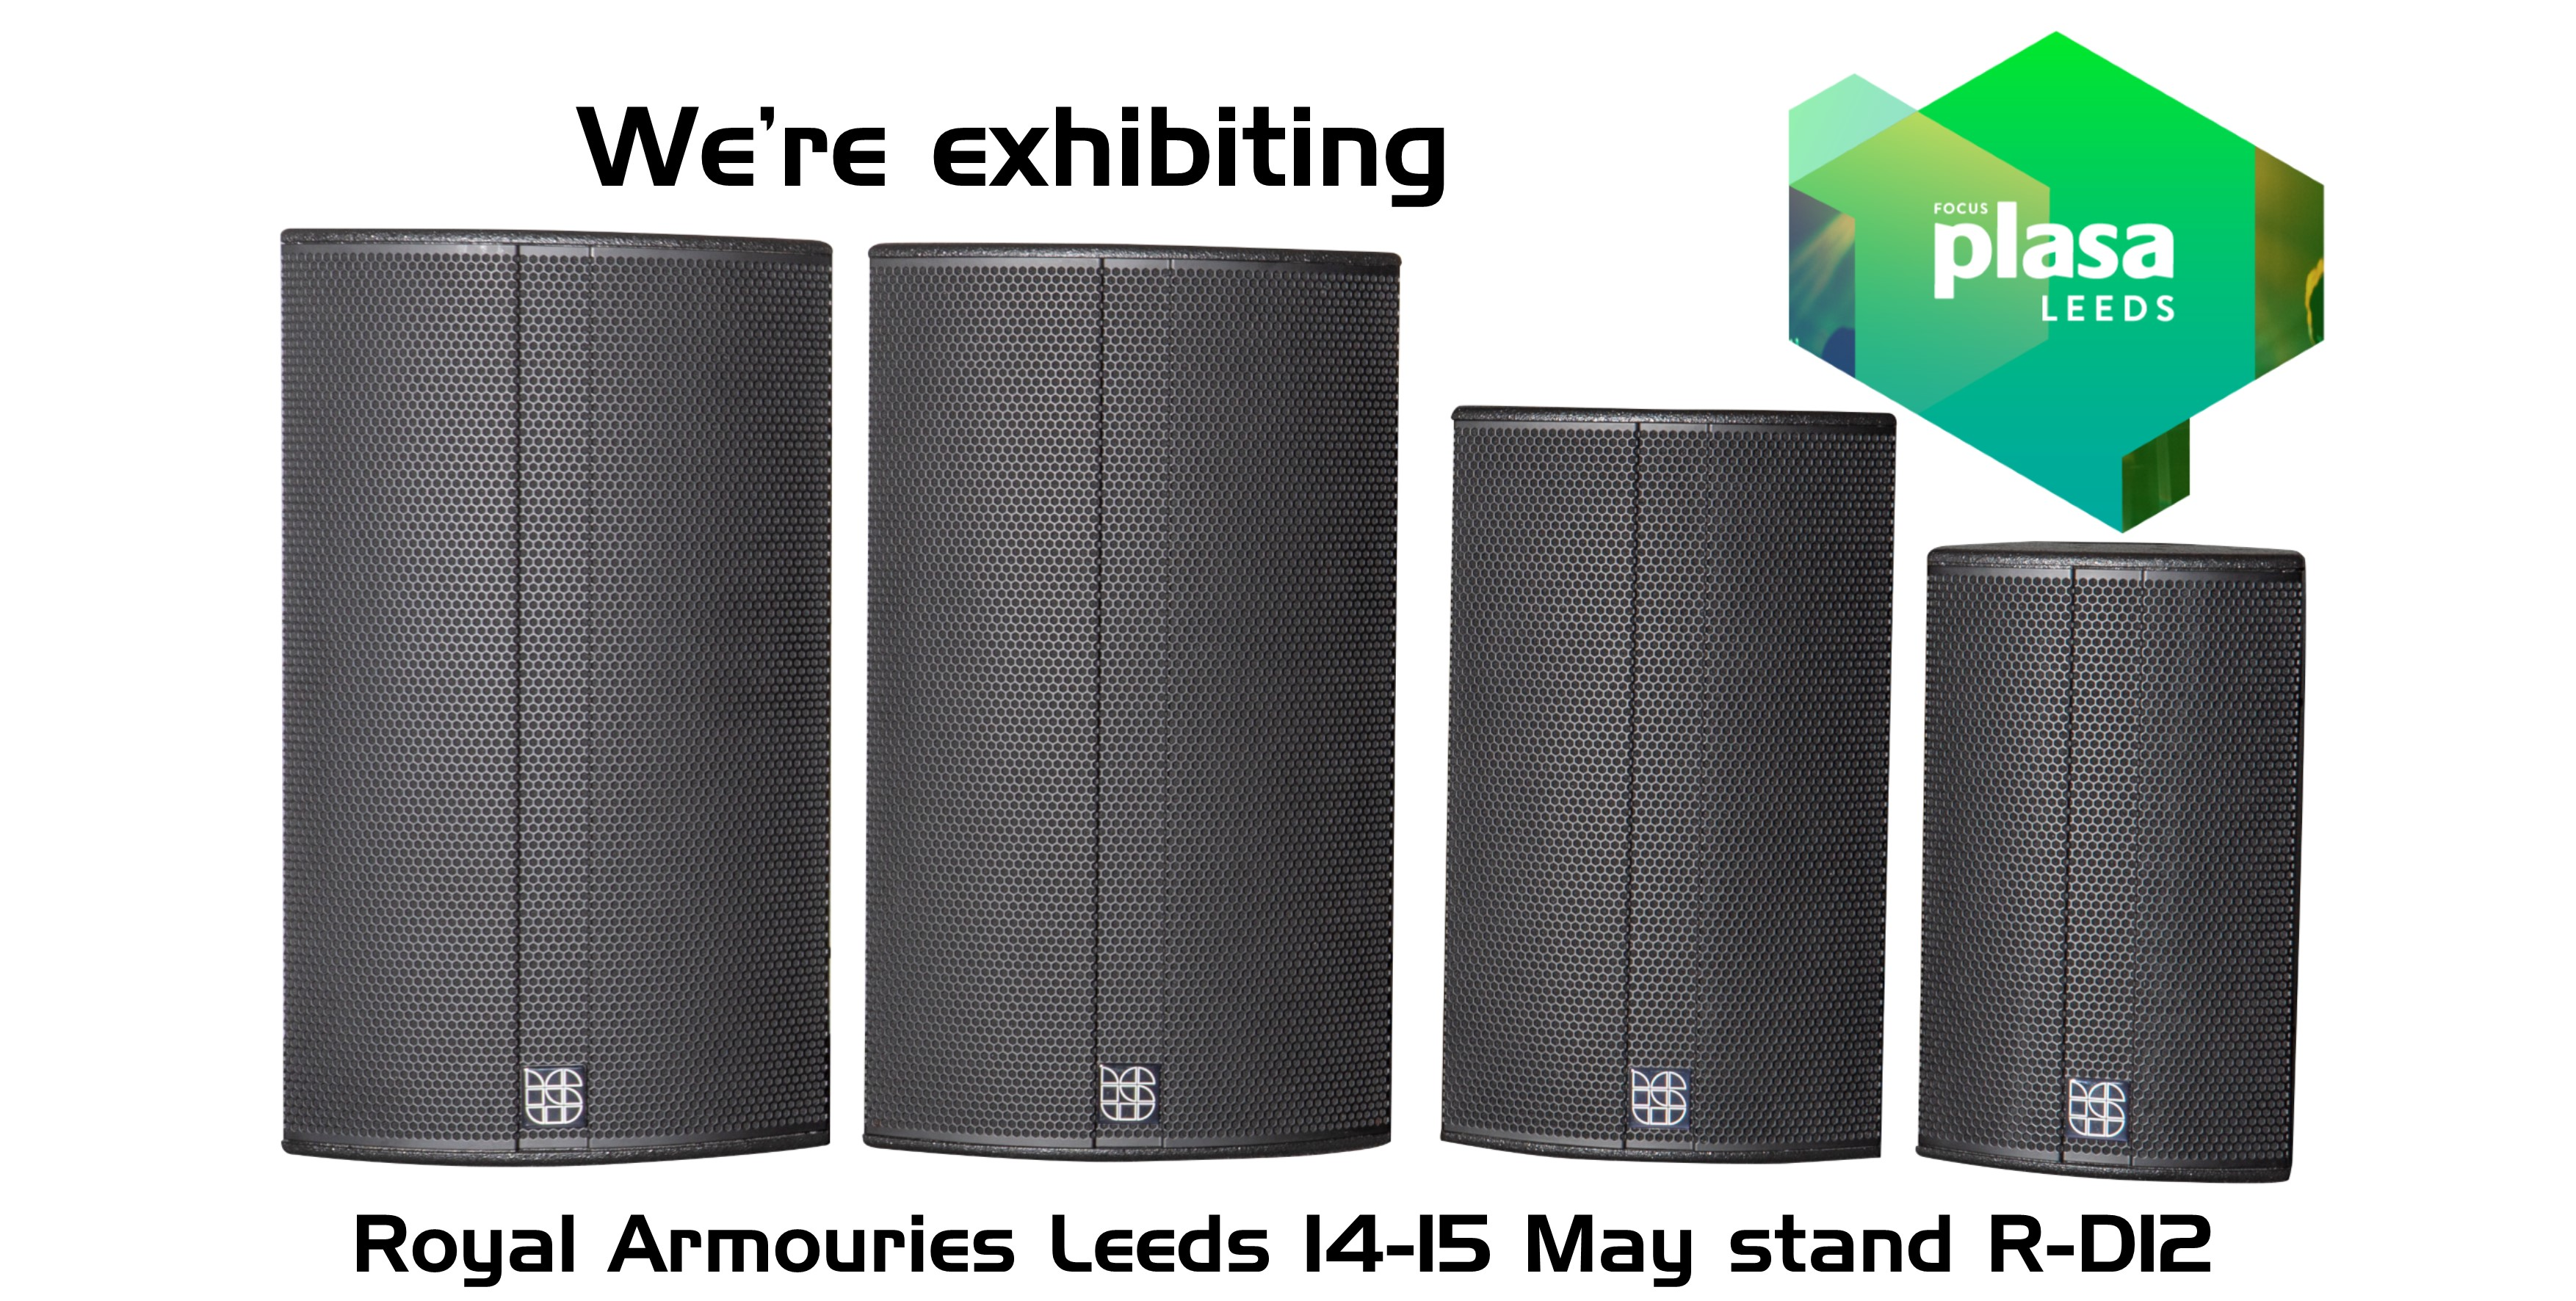 We're exhibiting at PLASA Focus Leeds